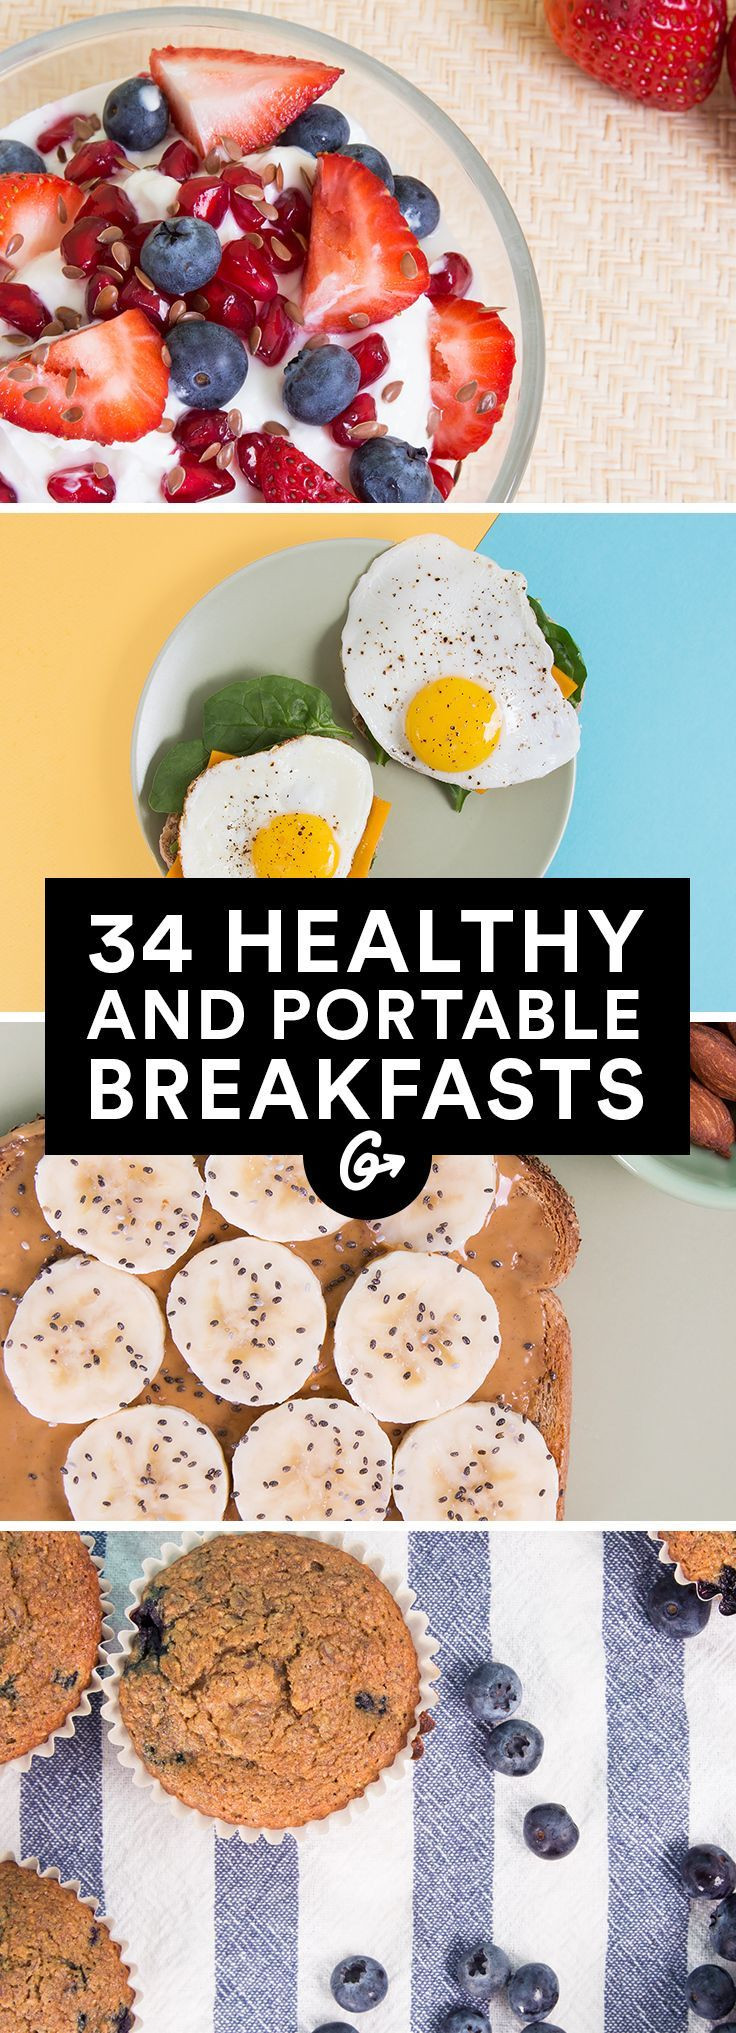 Healthy Breakfast For Runners  1000 images about Eating to Run Fast on Pinterest